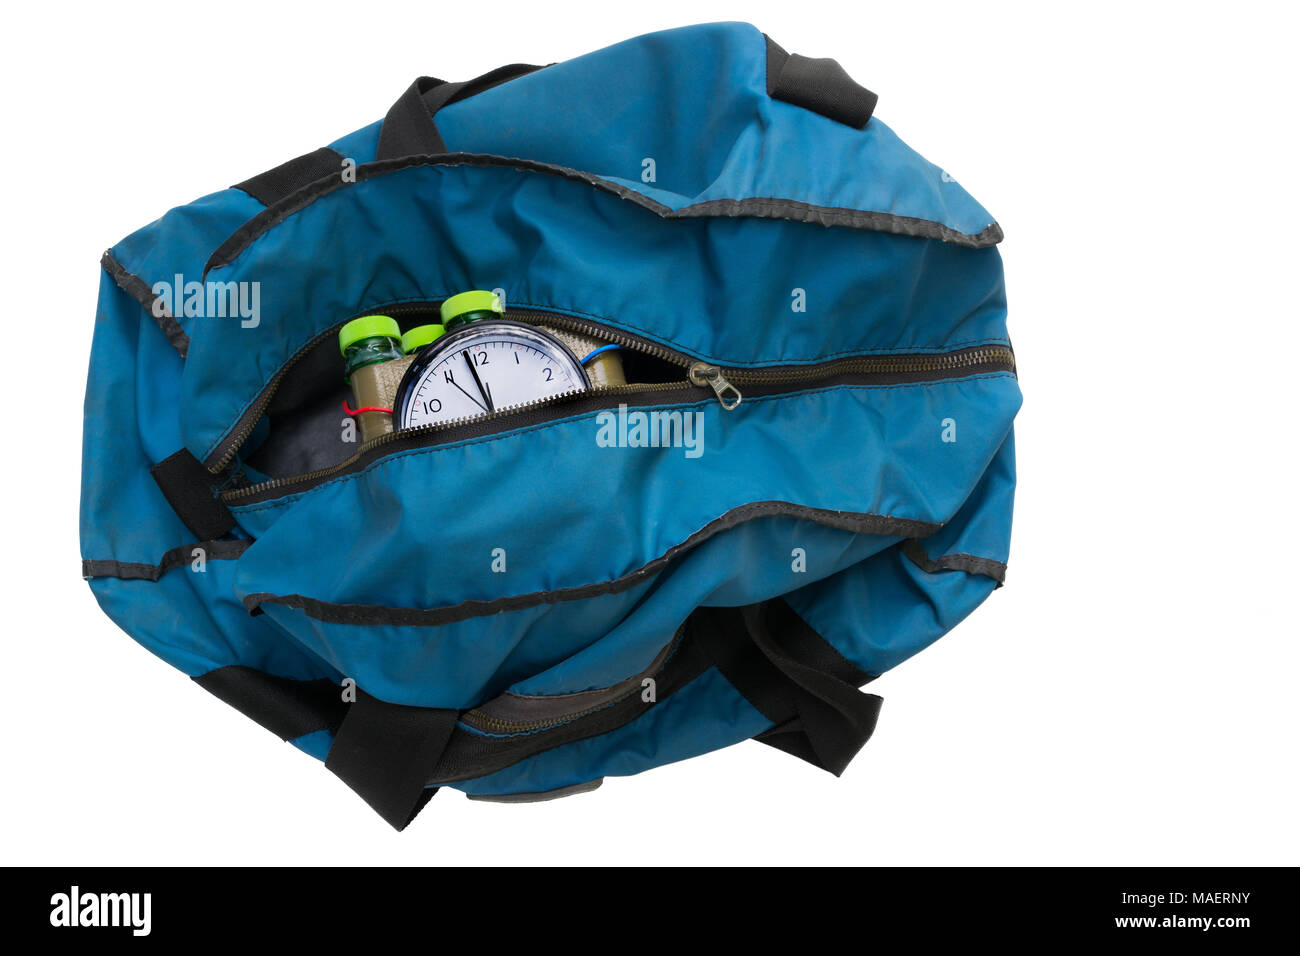 Time bomb inside blue bag. Isolated on white background. Imitation of the explosive device. Idea of weapons, terrorist attacks and violence. - Stock Image